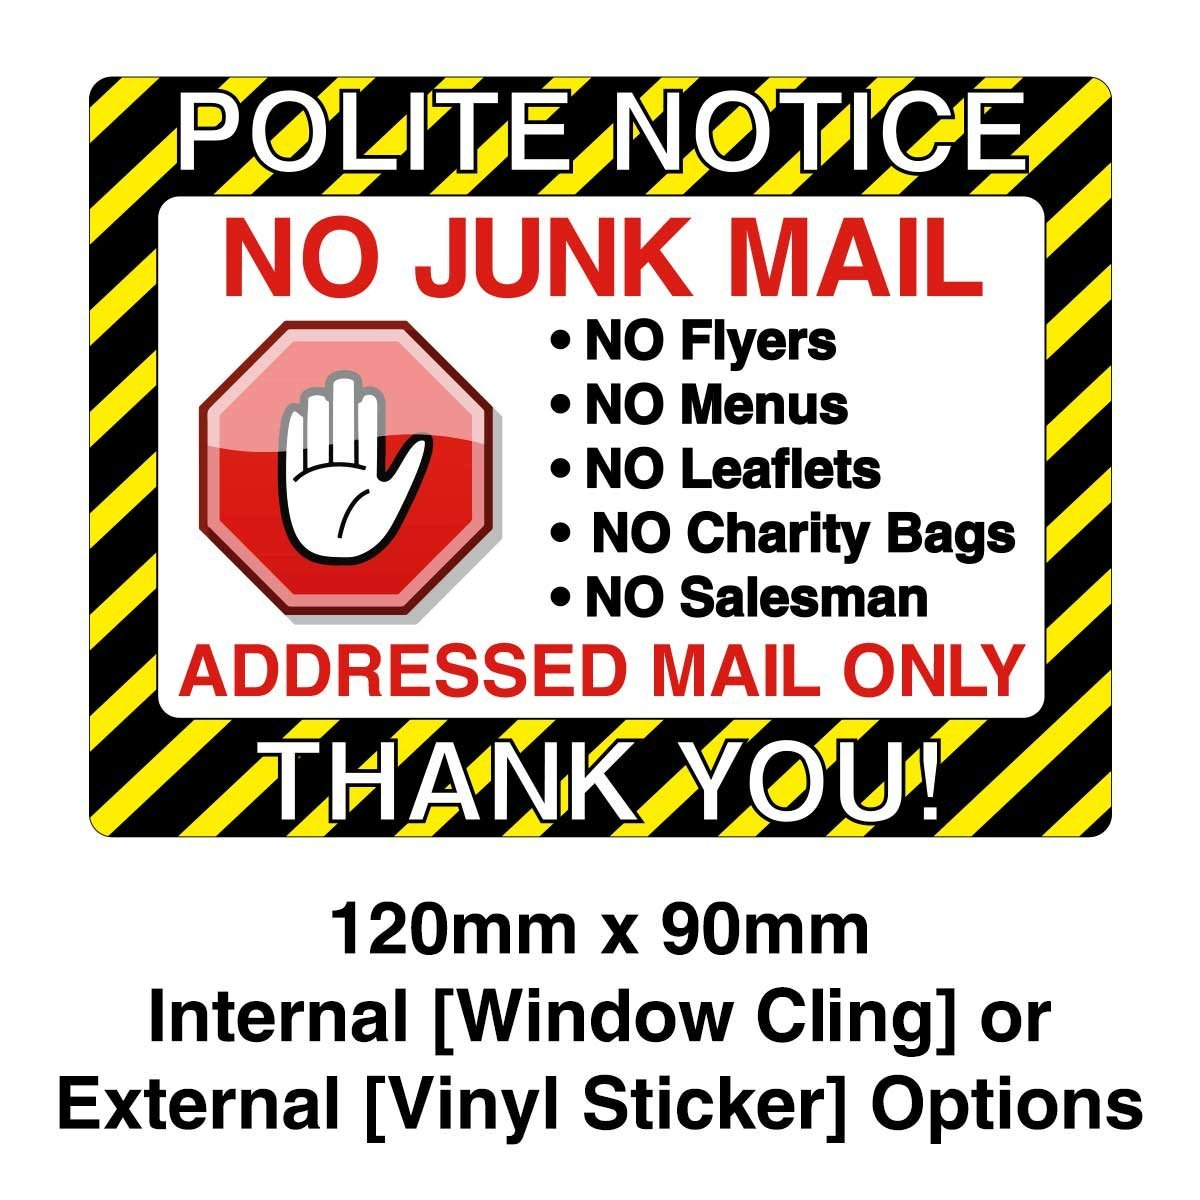 No Junk Mail Sign Vinyl Sticker Or Window Cling Options